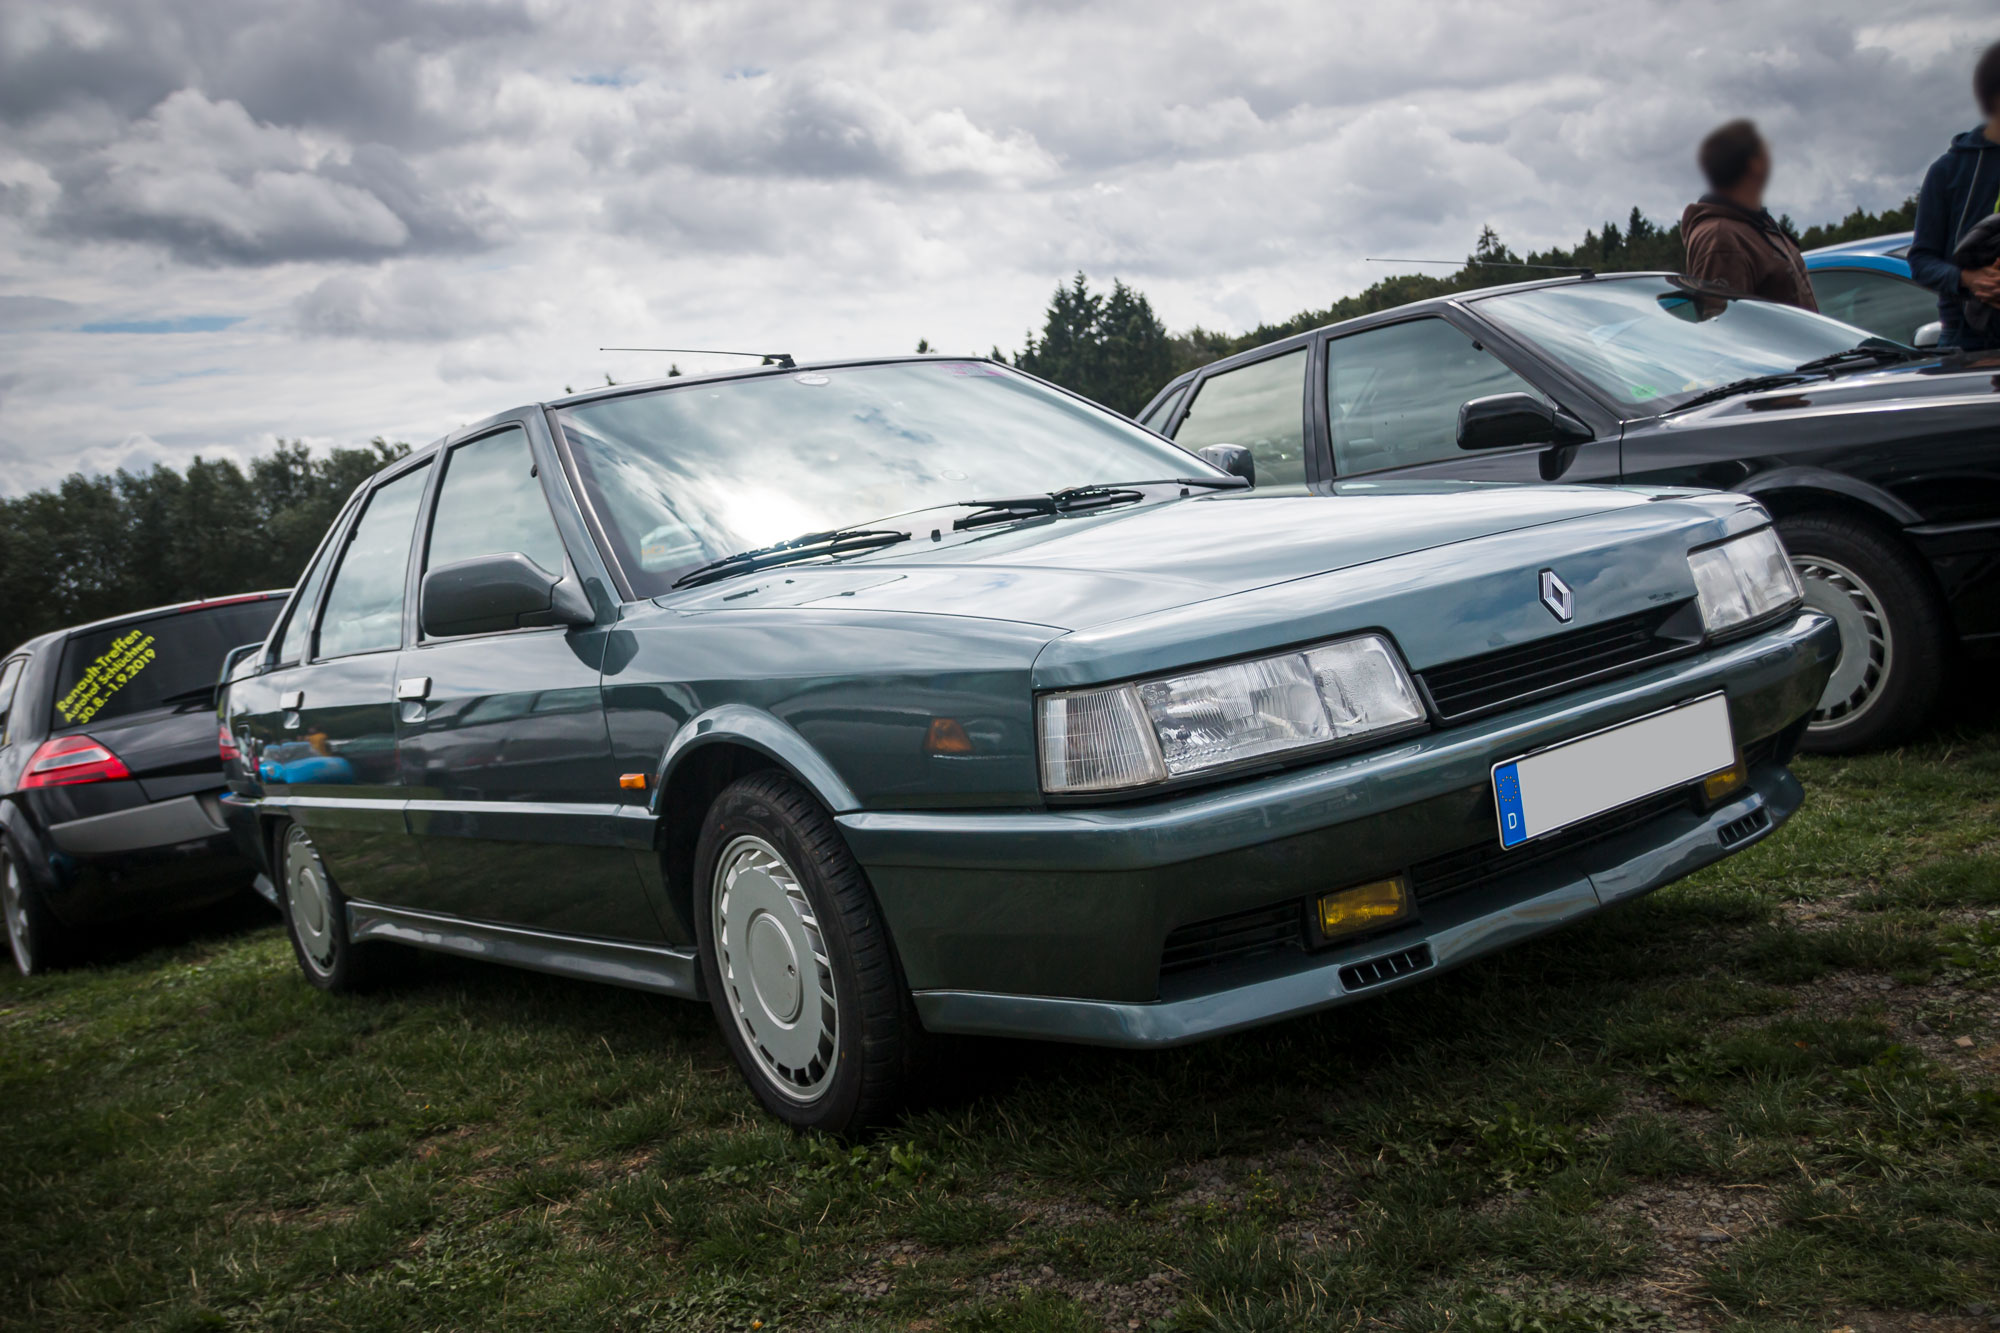 Renault 21 Turbo - D'ARC Sommerfest 2019 am Nürburgring